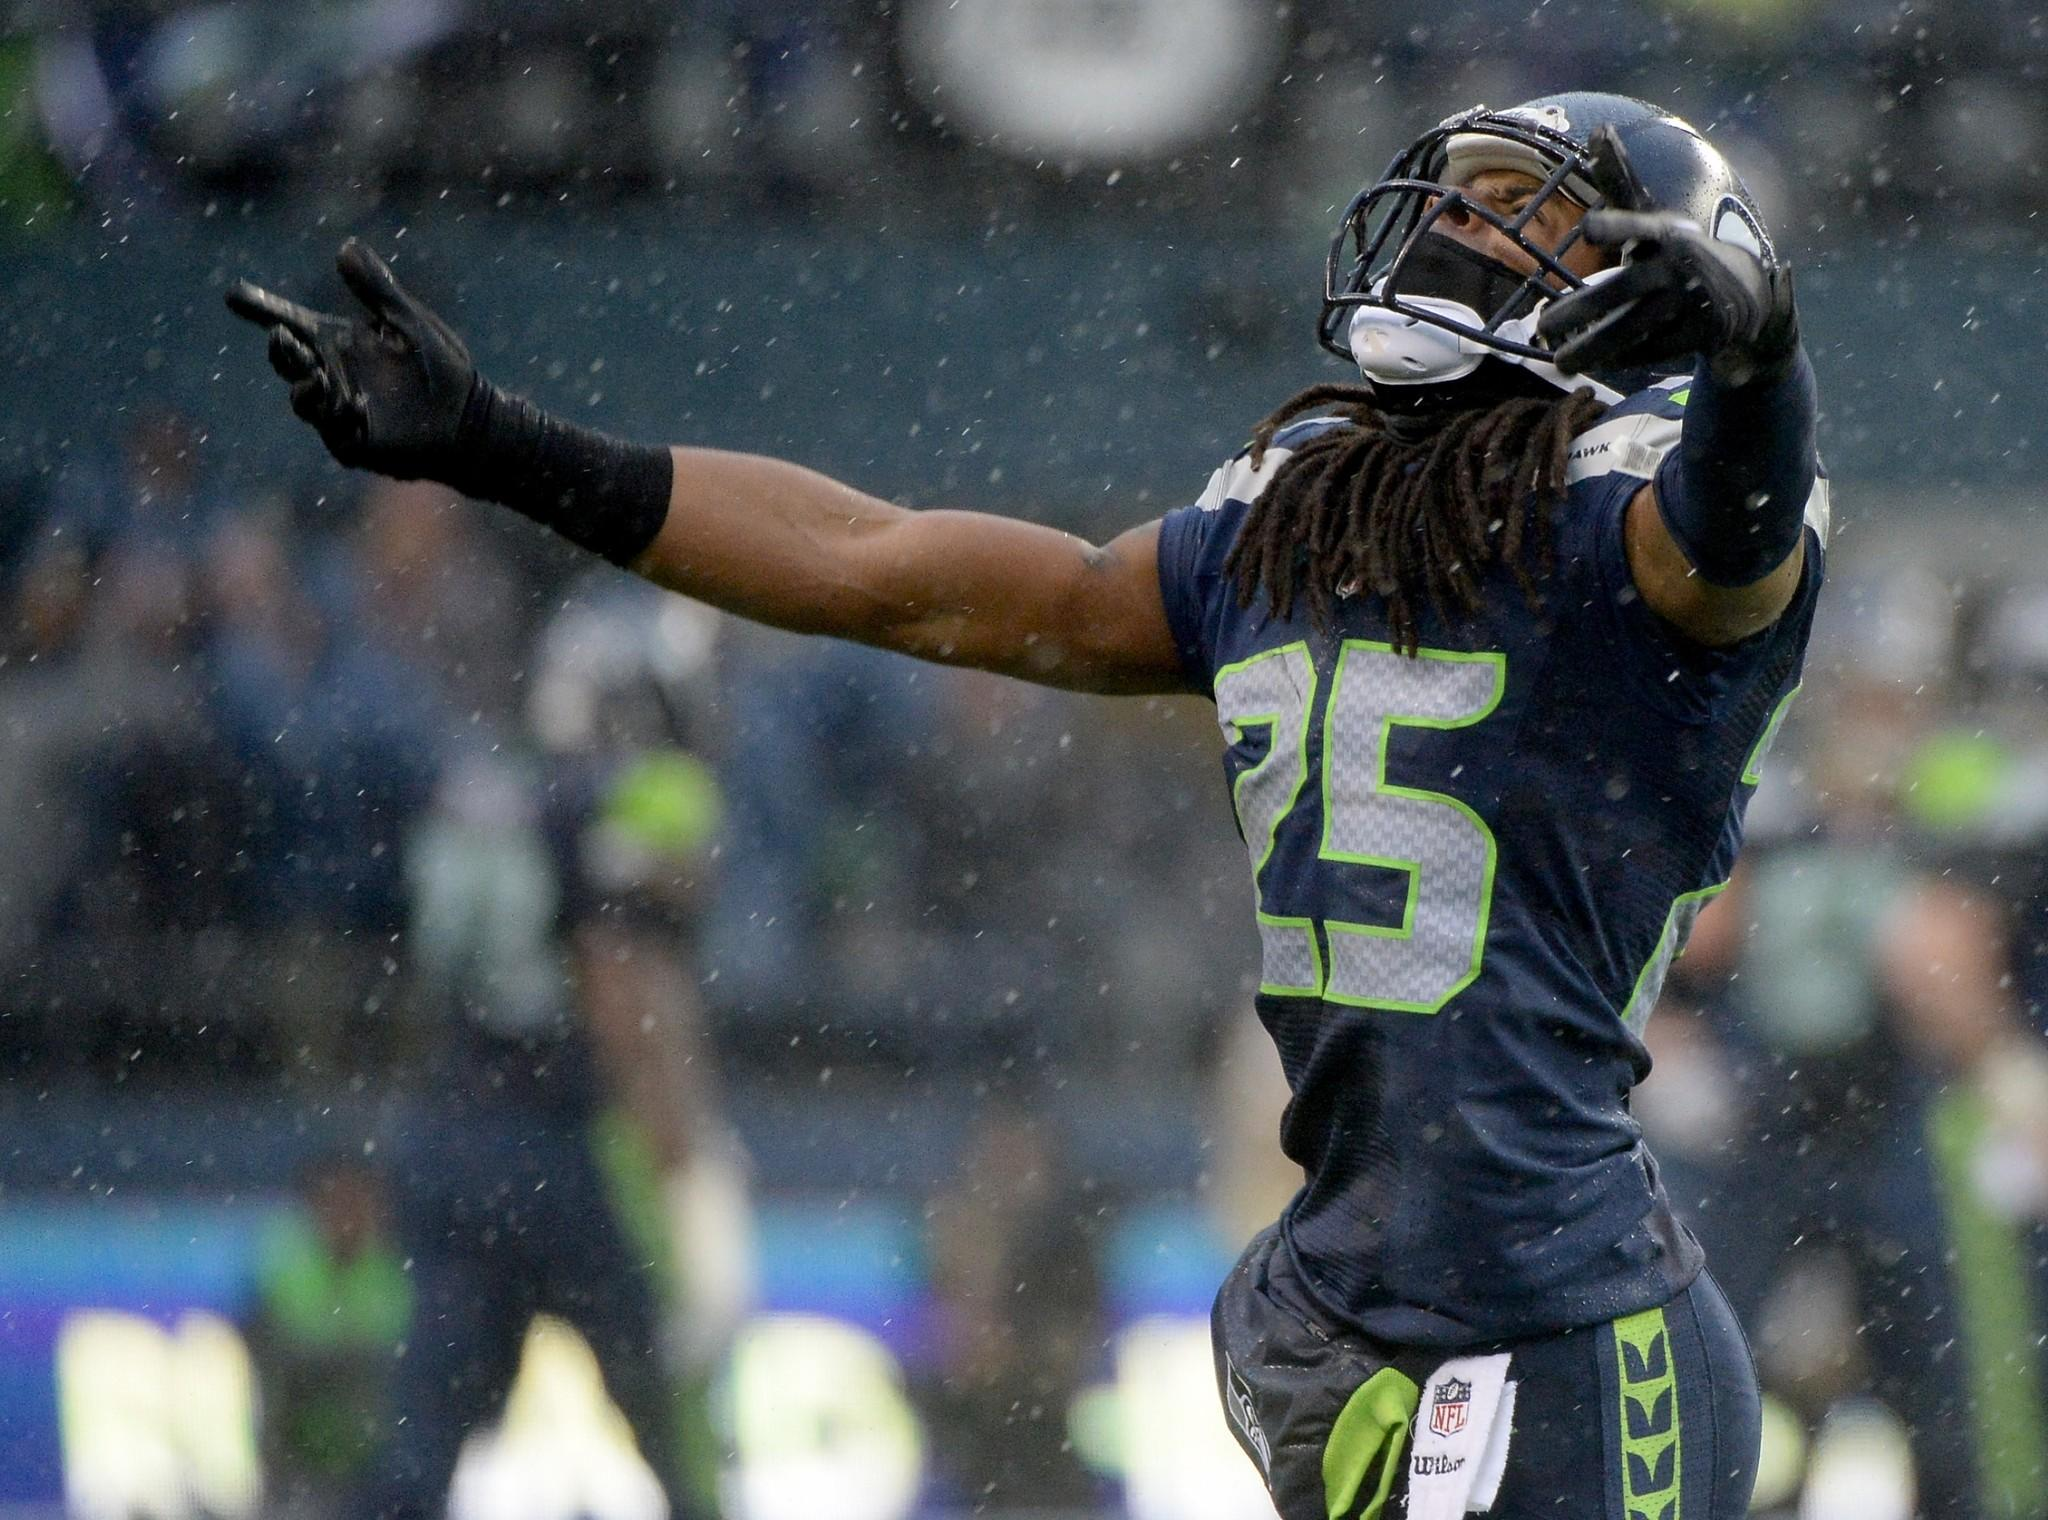 Cornerback Richard Sherman #25 of the Seattle Seahawks reacts in the second quarter while taking on the New Orleans Saints during the NFC Divisional Playoff Game at CenturyLink Field on January 11, 2014 in Seattle, Washington.